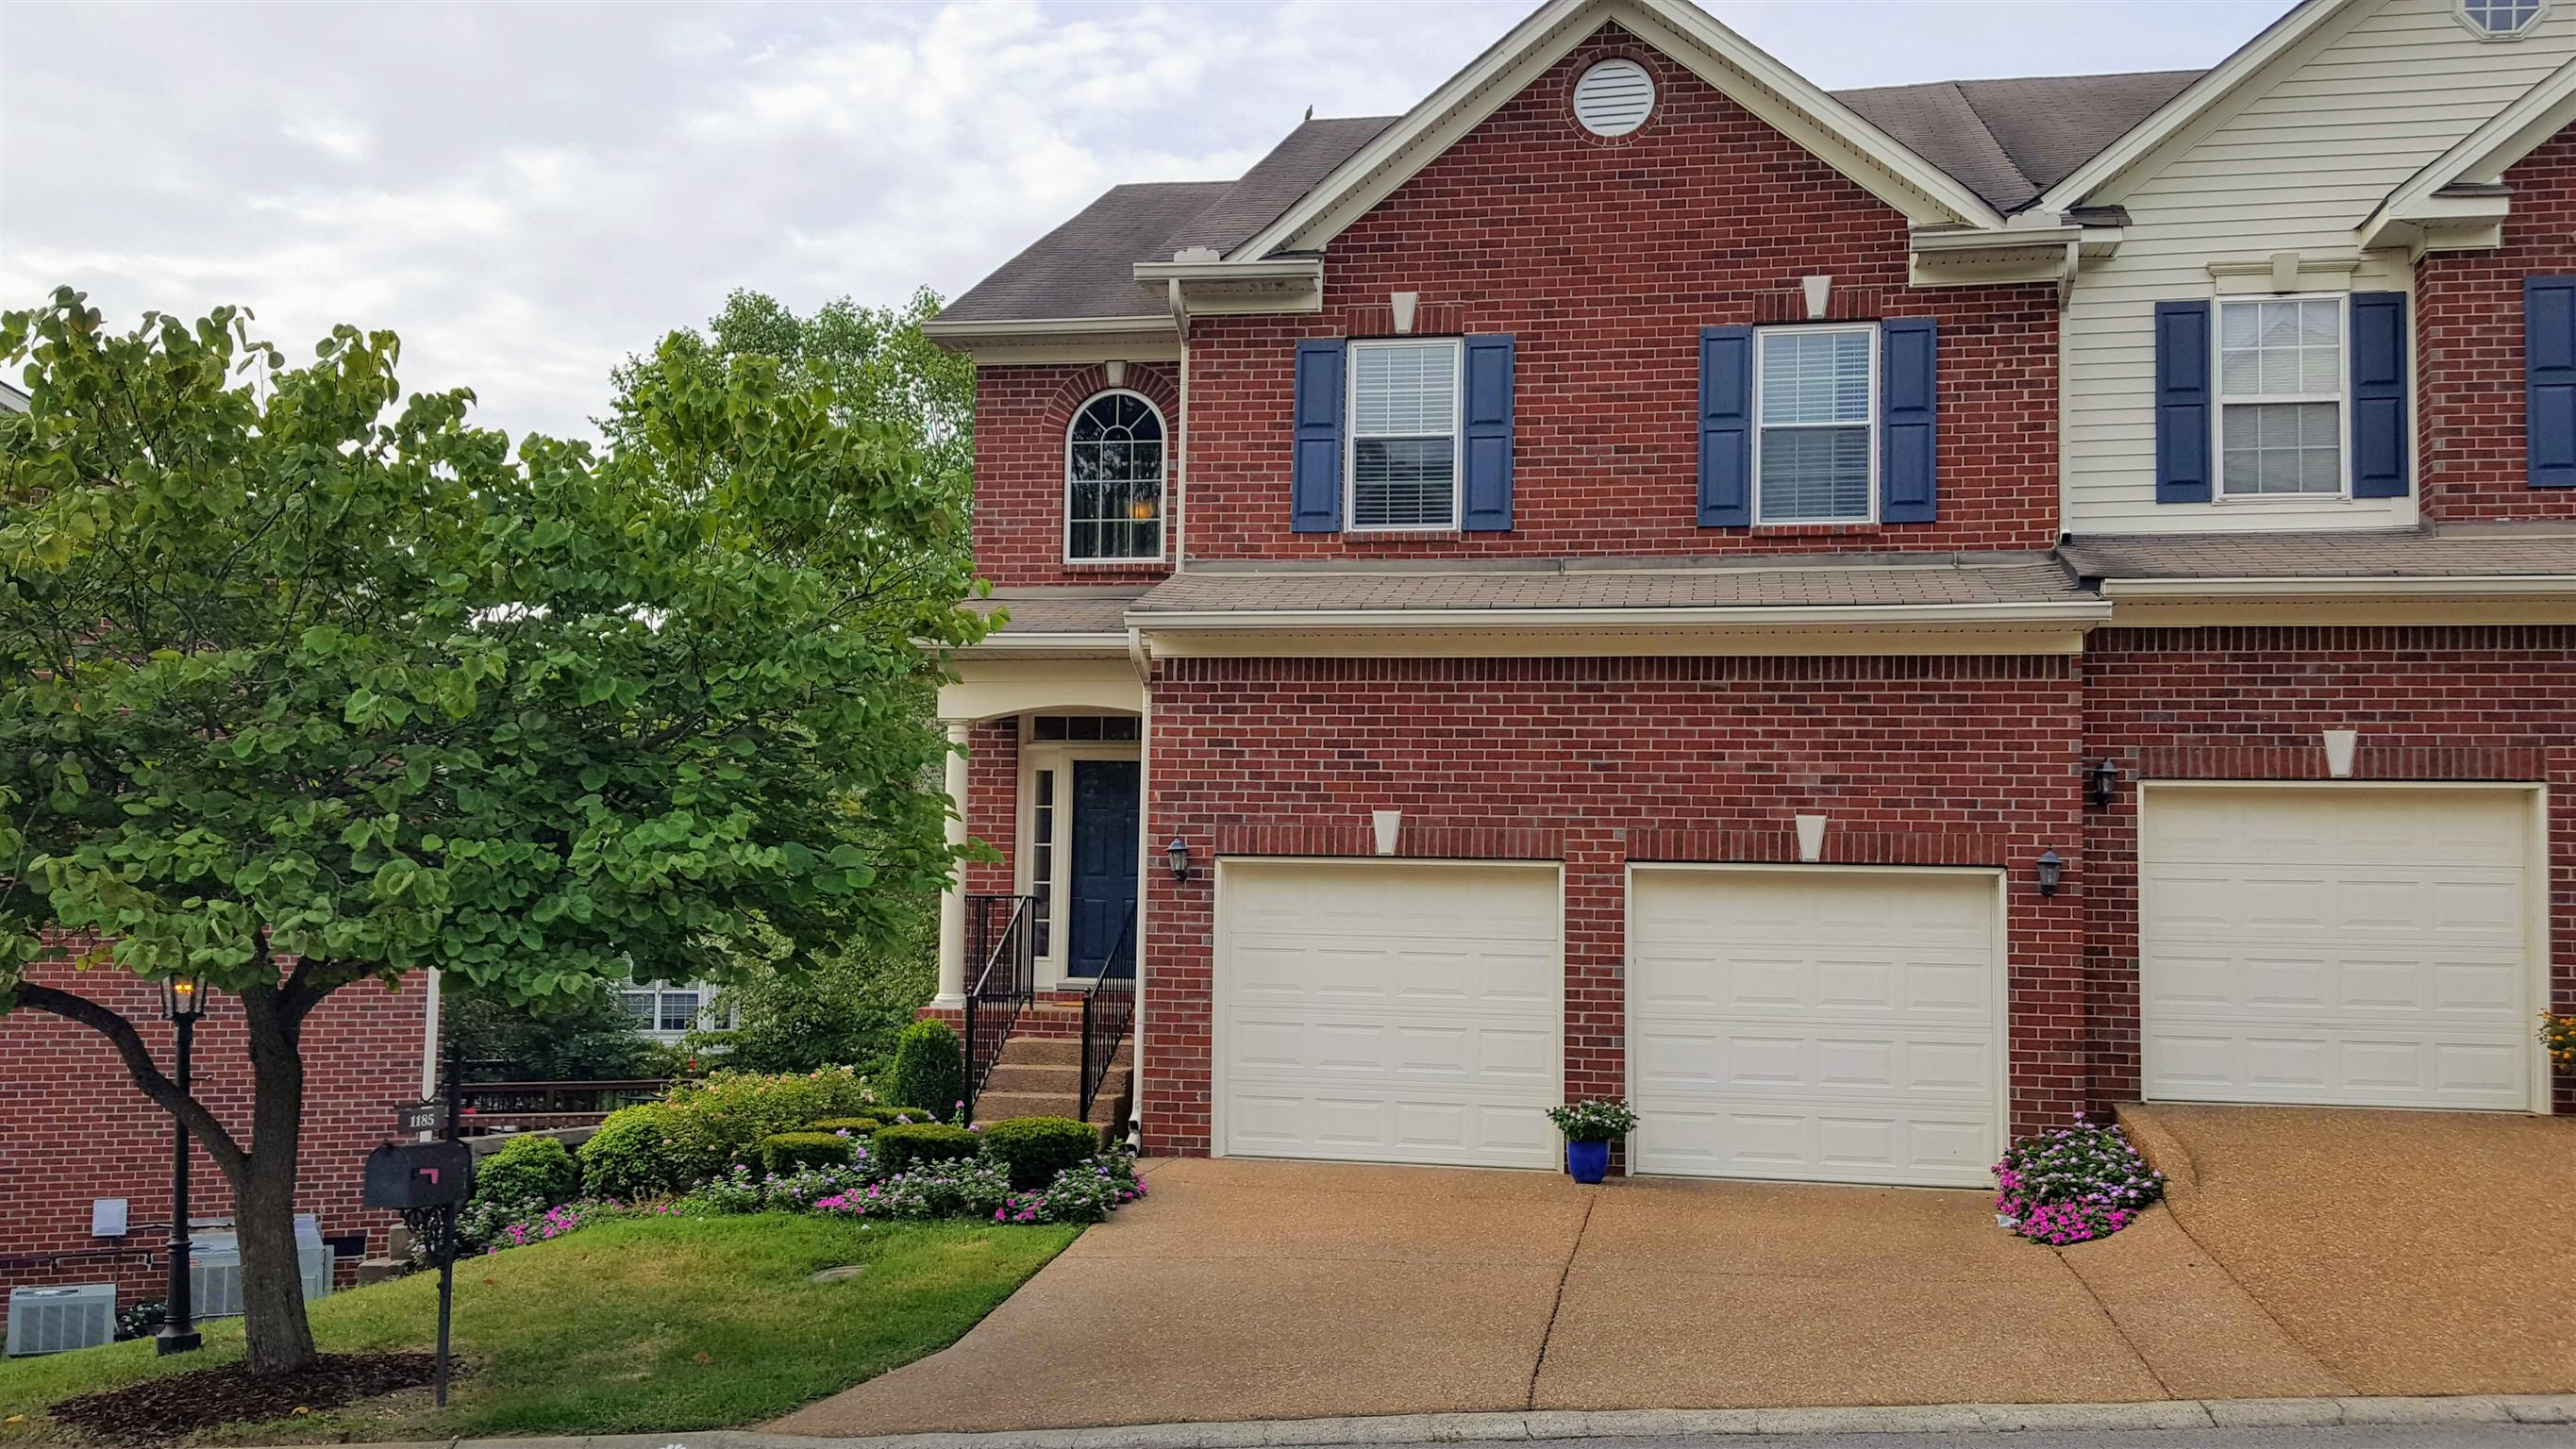 1185 Culpepper Cir, Franklin, TN 37064